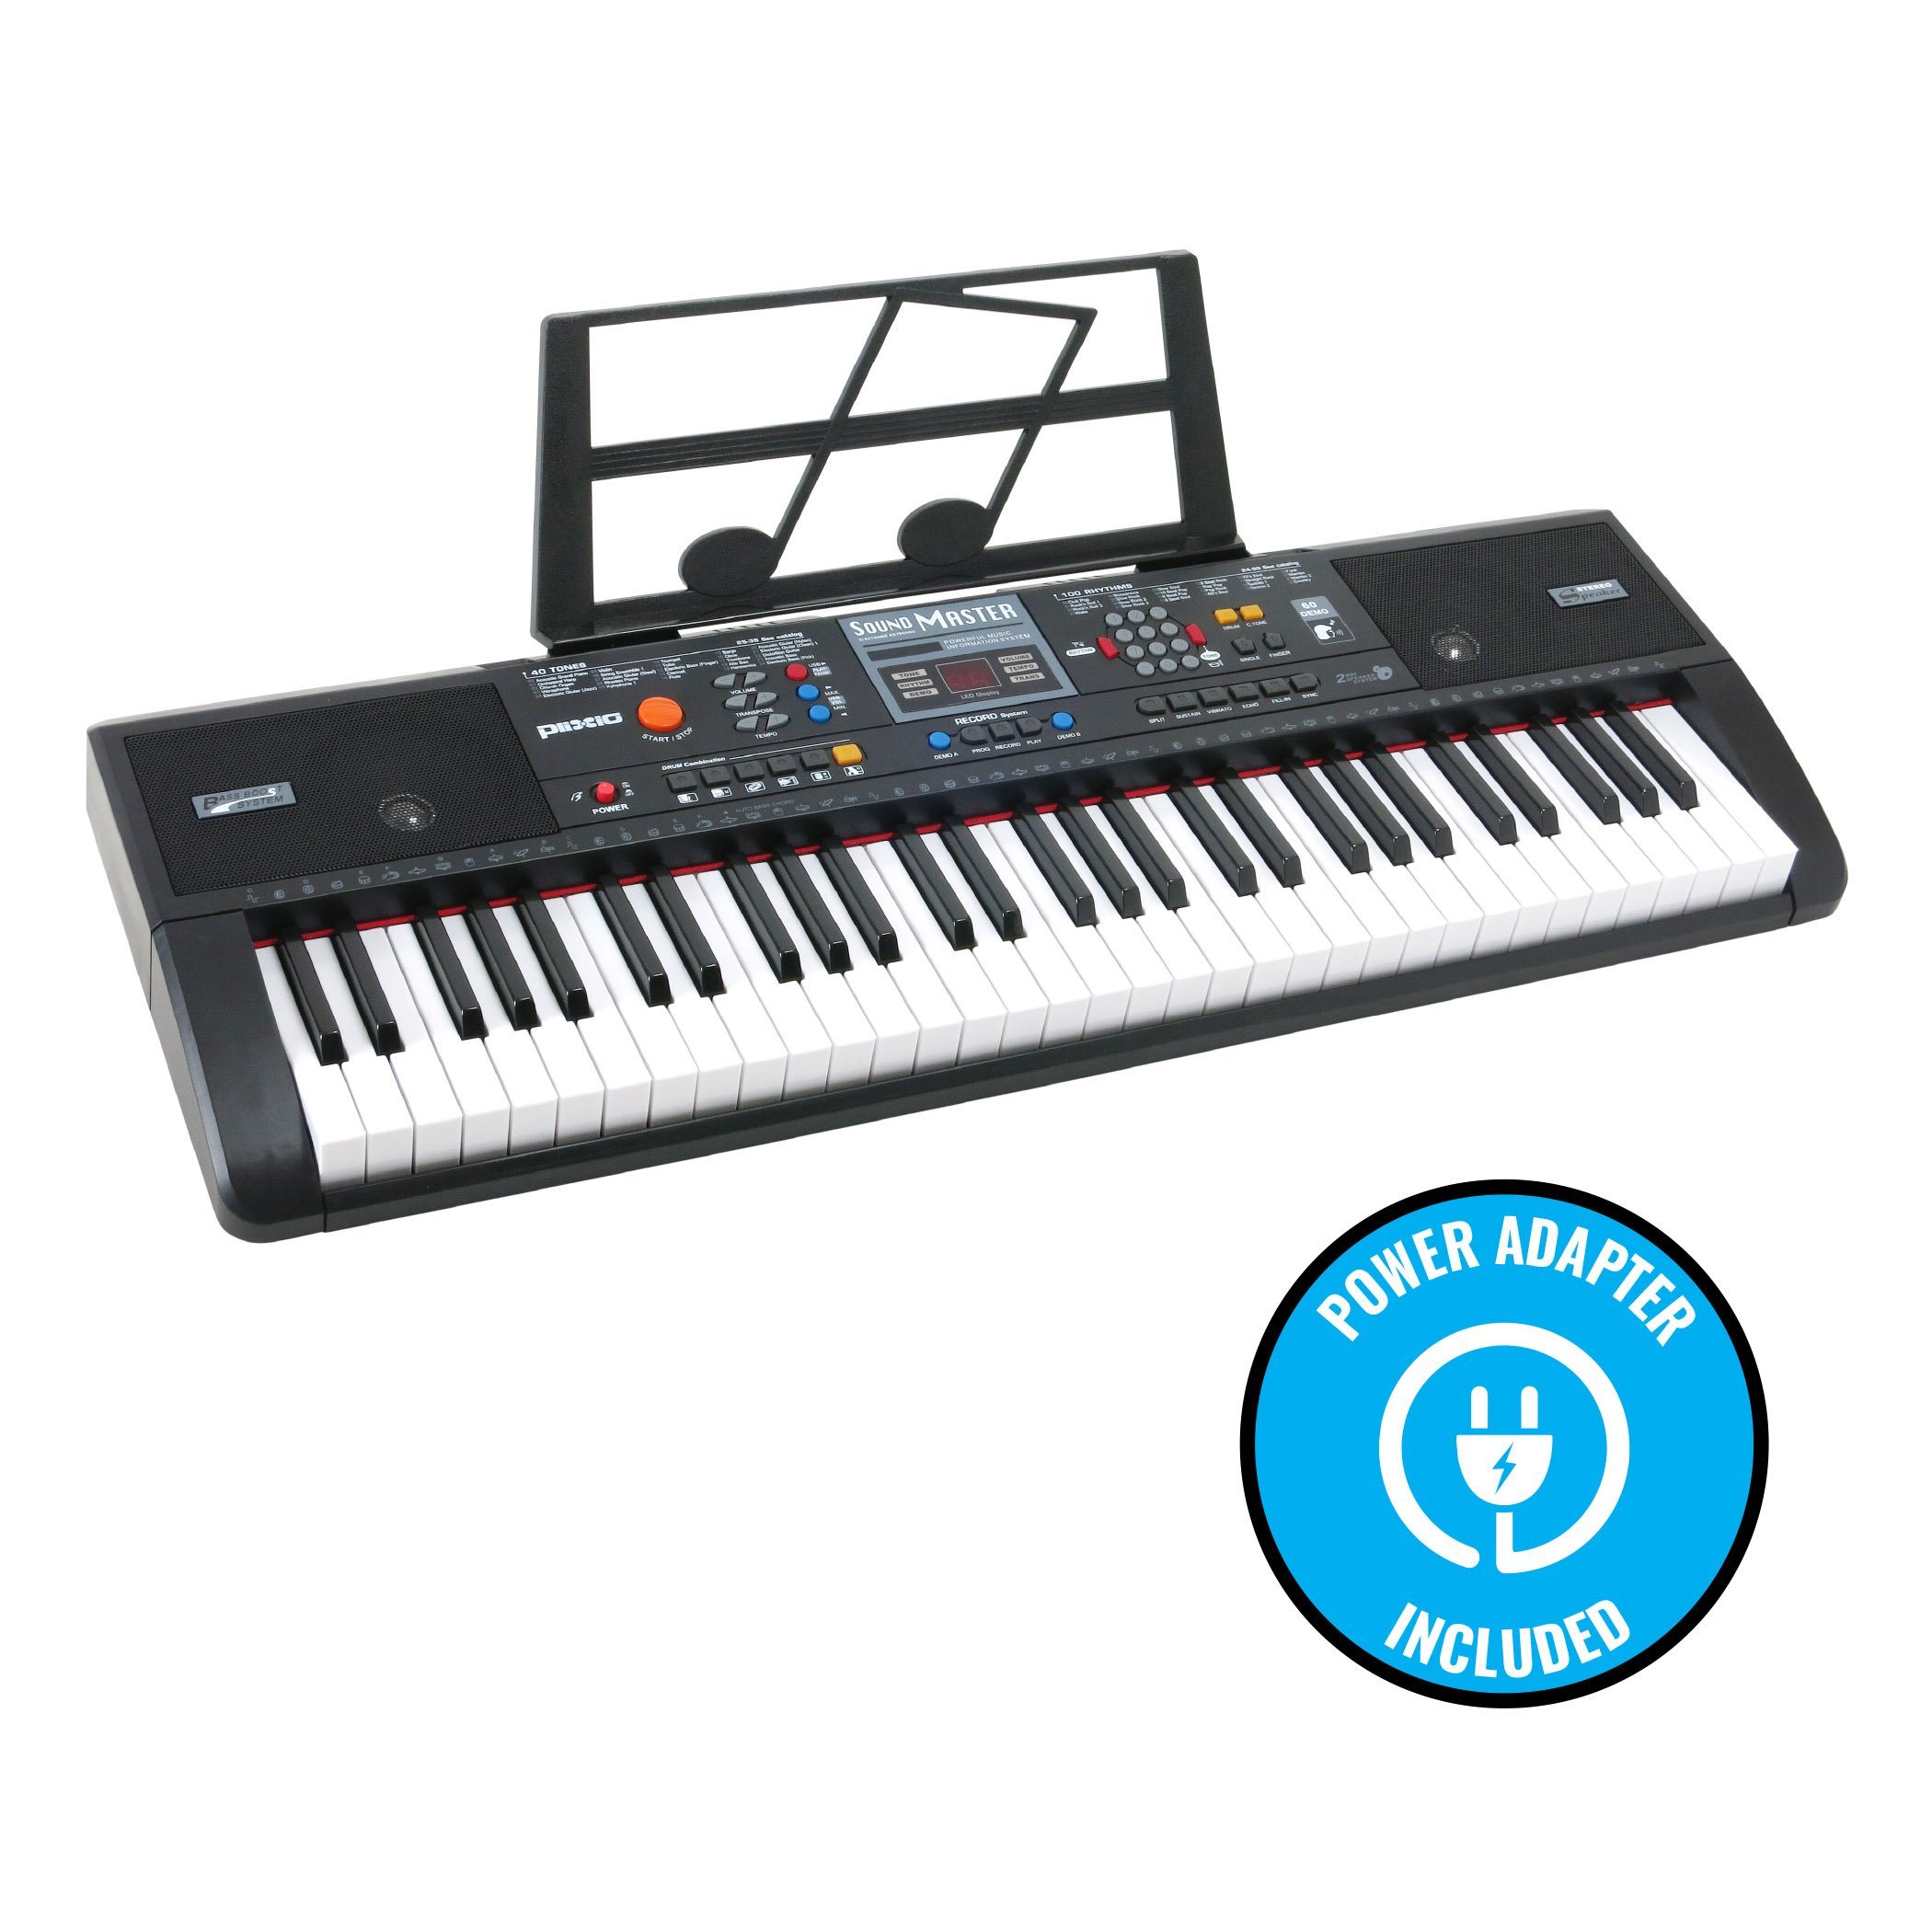 Plixio 61 Key Electronic Music Keyboard Piano and Adjustable Z Style Stand by Plixio (Image #2)